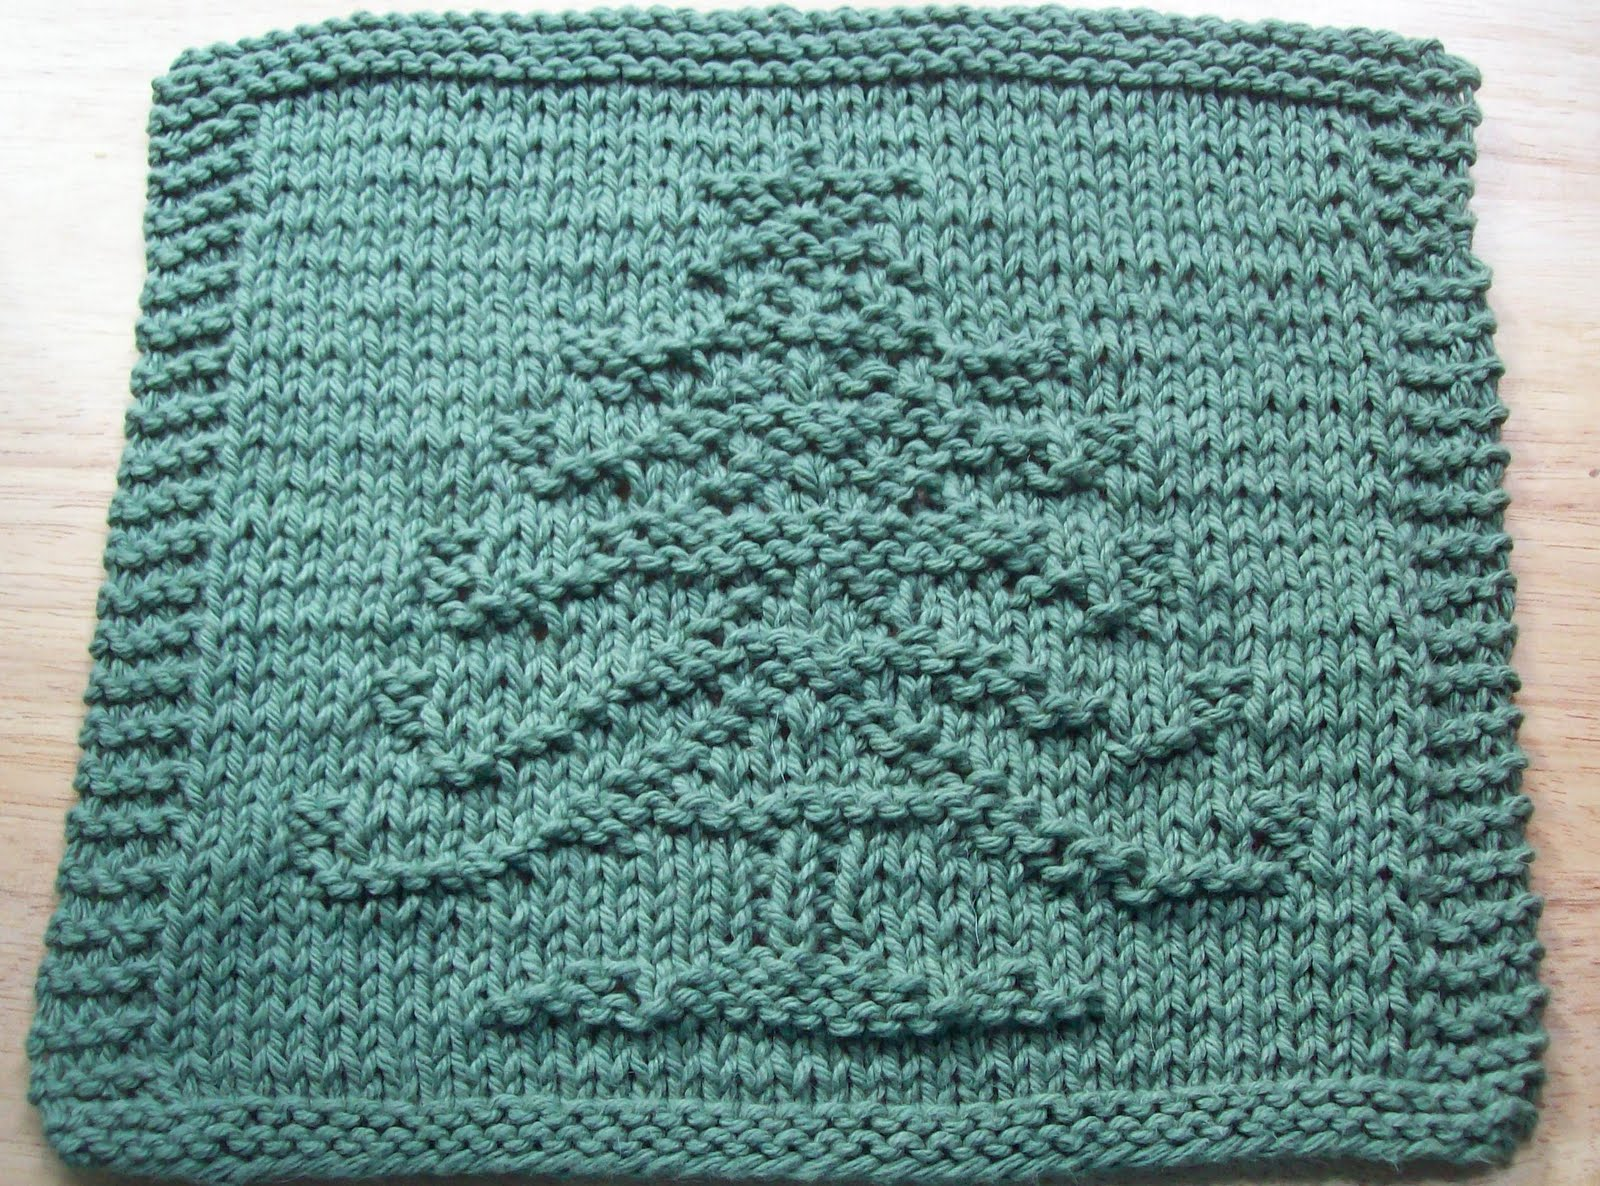 Dishcloth Knitting Pattern : DigKnitty Designs: Another Christmas Tree Knit Dishcloth ...